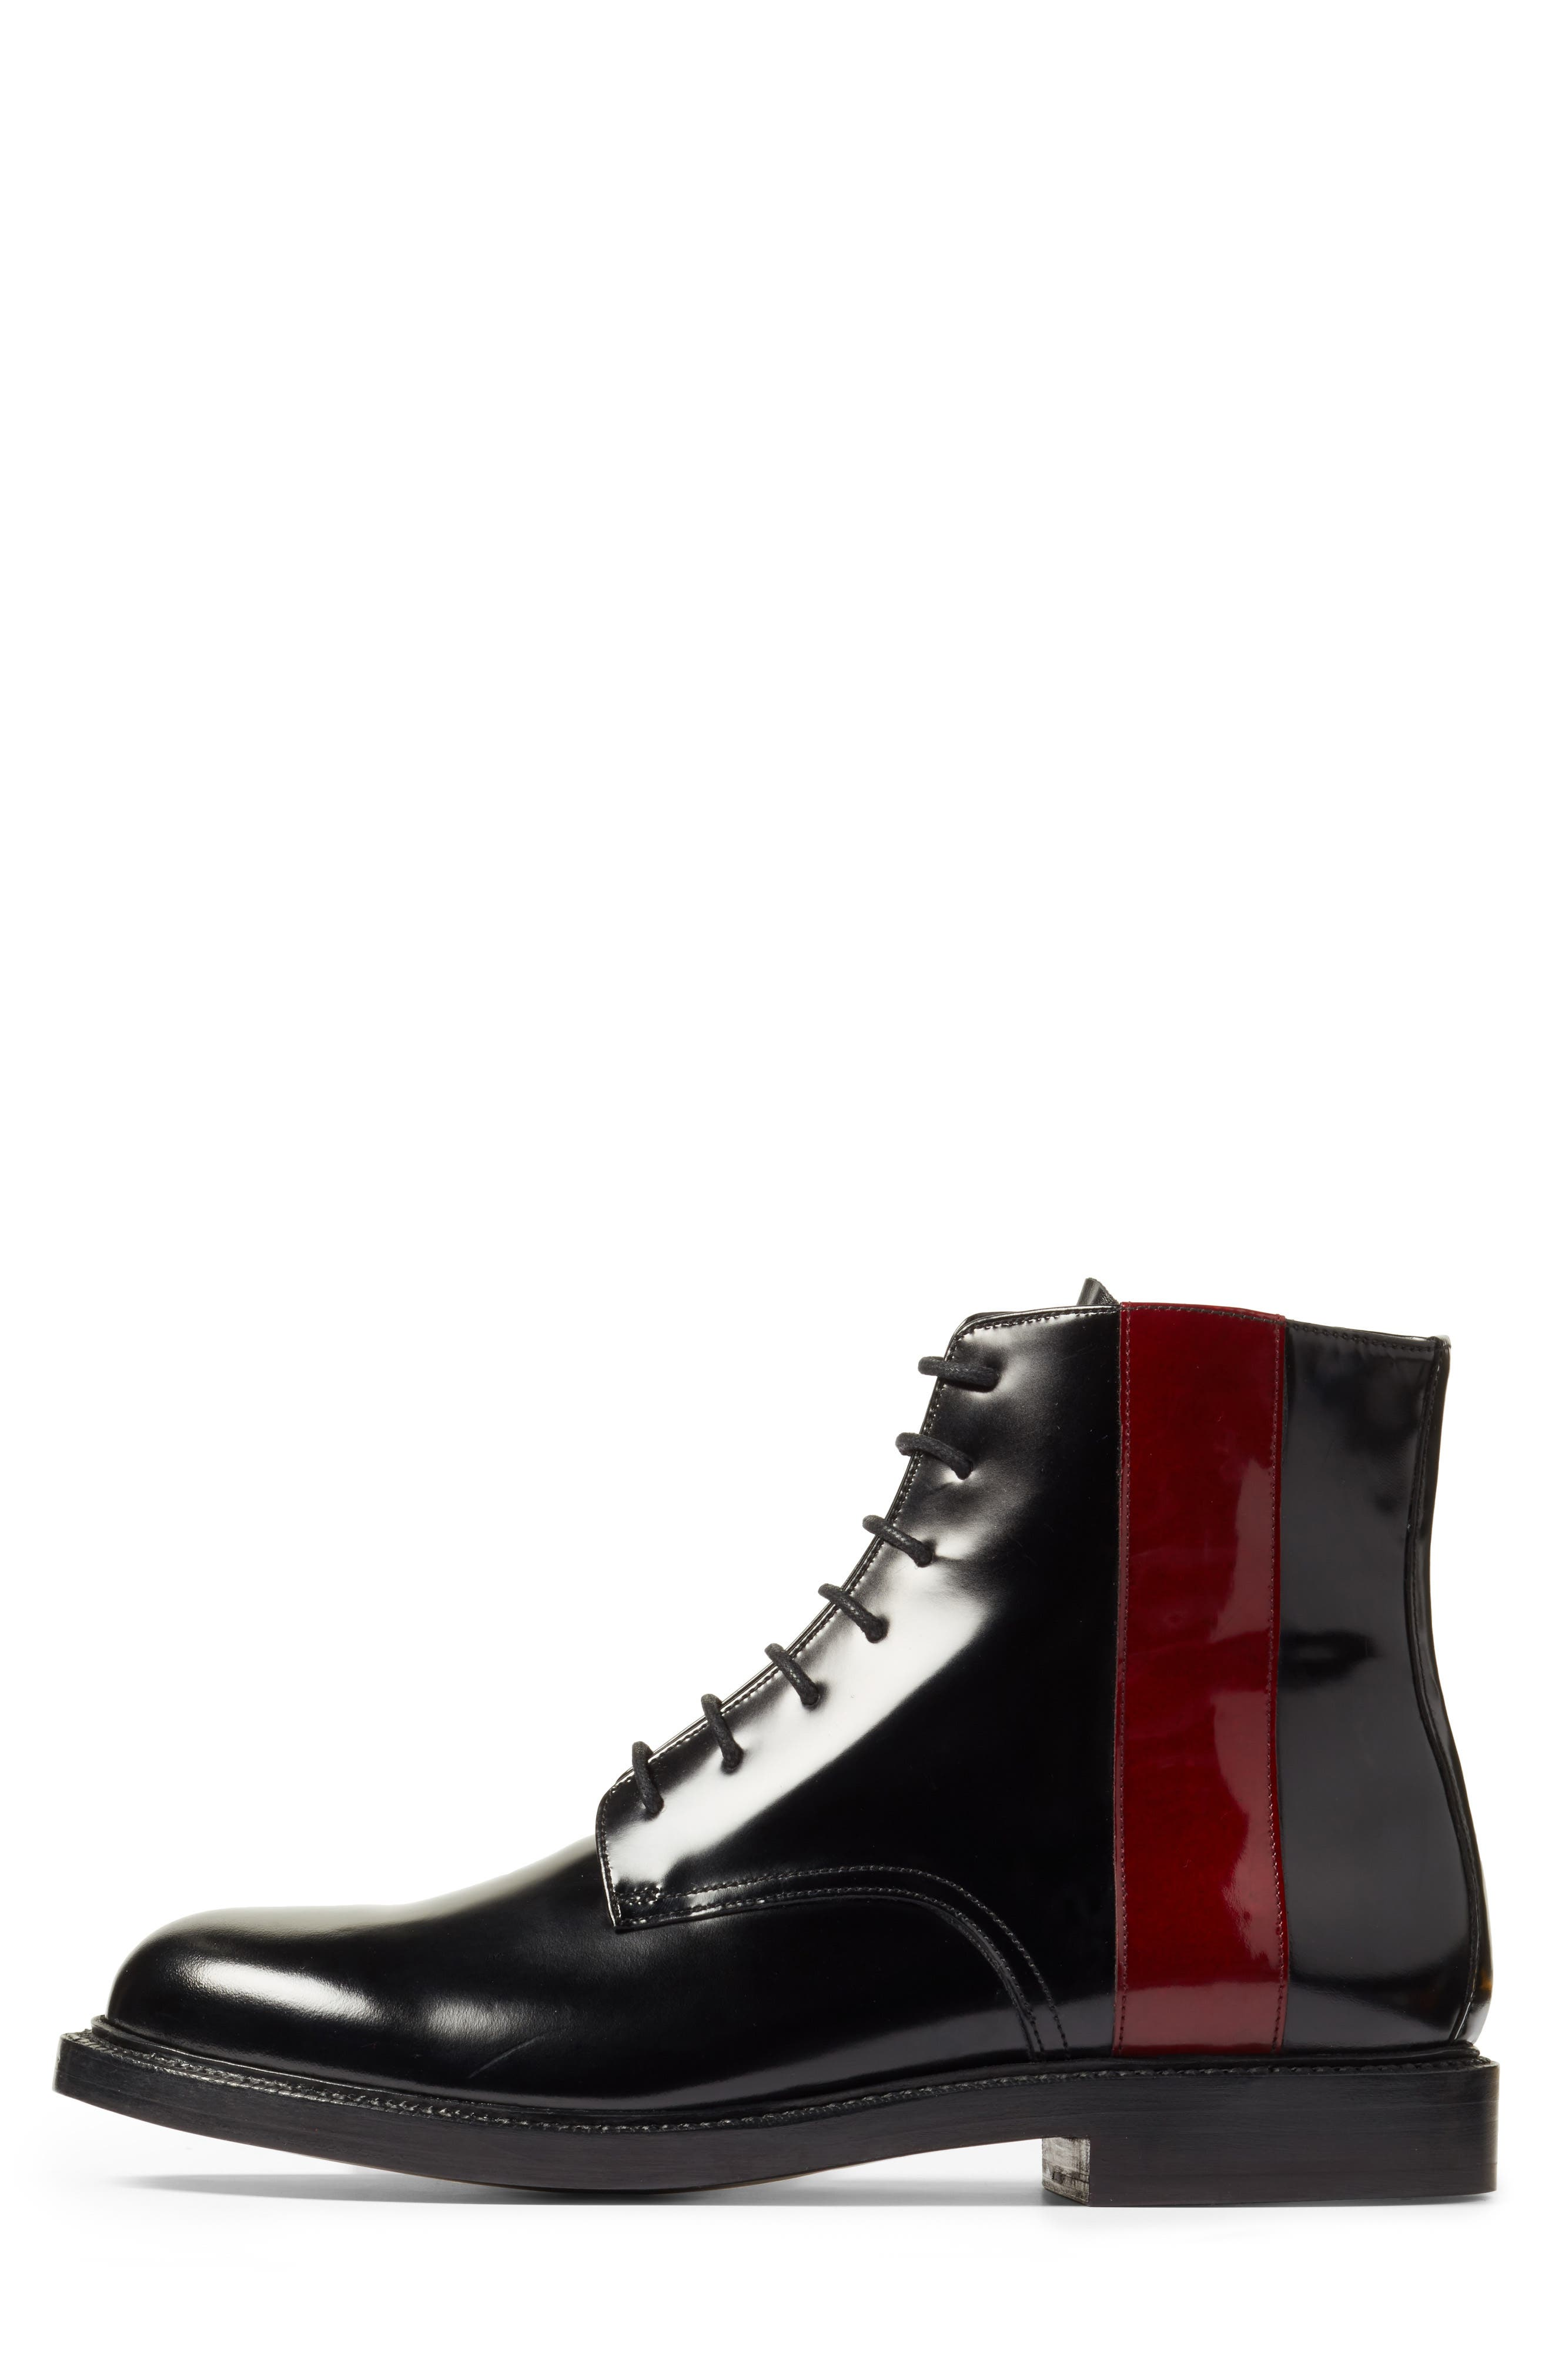 Hova Boot,                             Alternate thumbnail 3, color,                             Black/ Red Leather